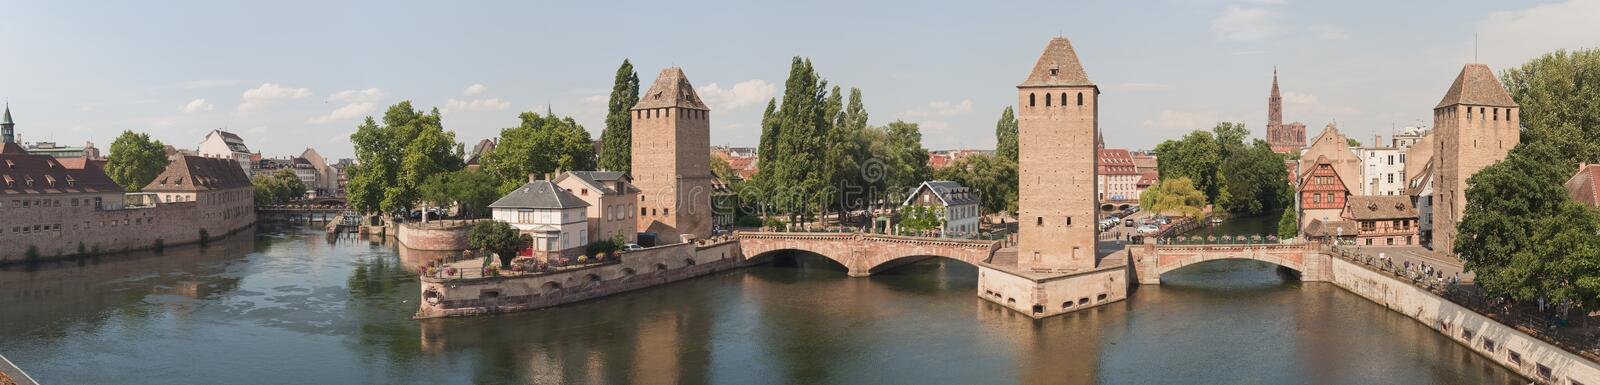 Ponts couverts. At the Ill river viewed from Barrage Vauban, in the Petite France quarter, Grande Ile, Strasbourg, France stock photography